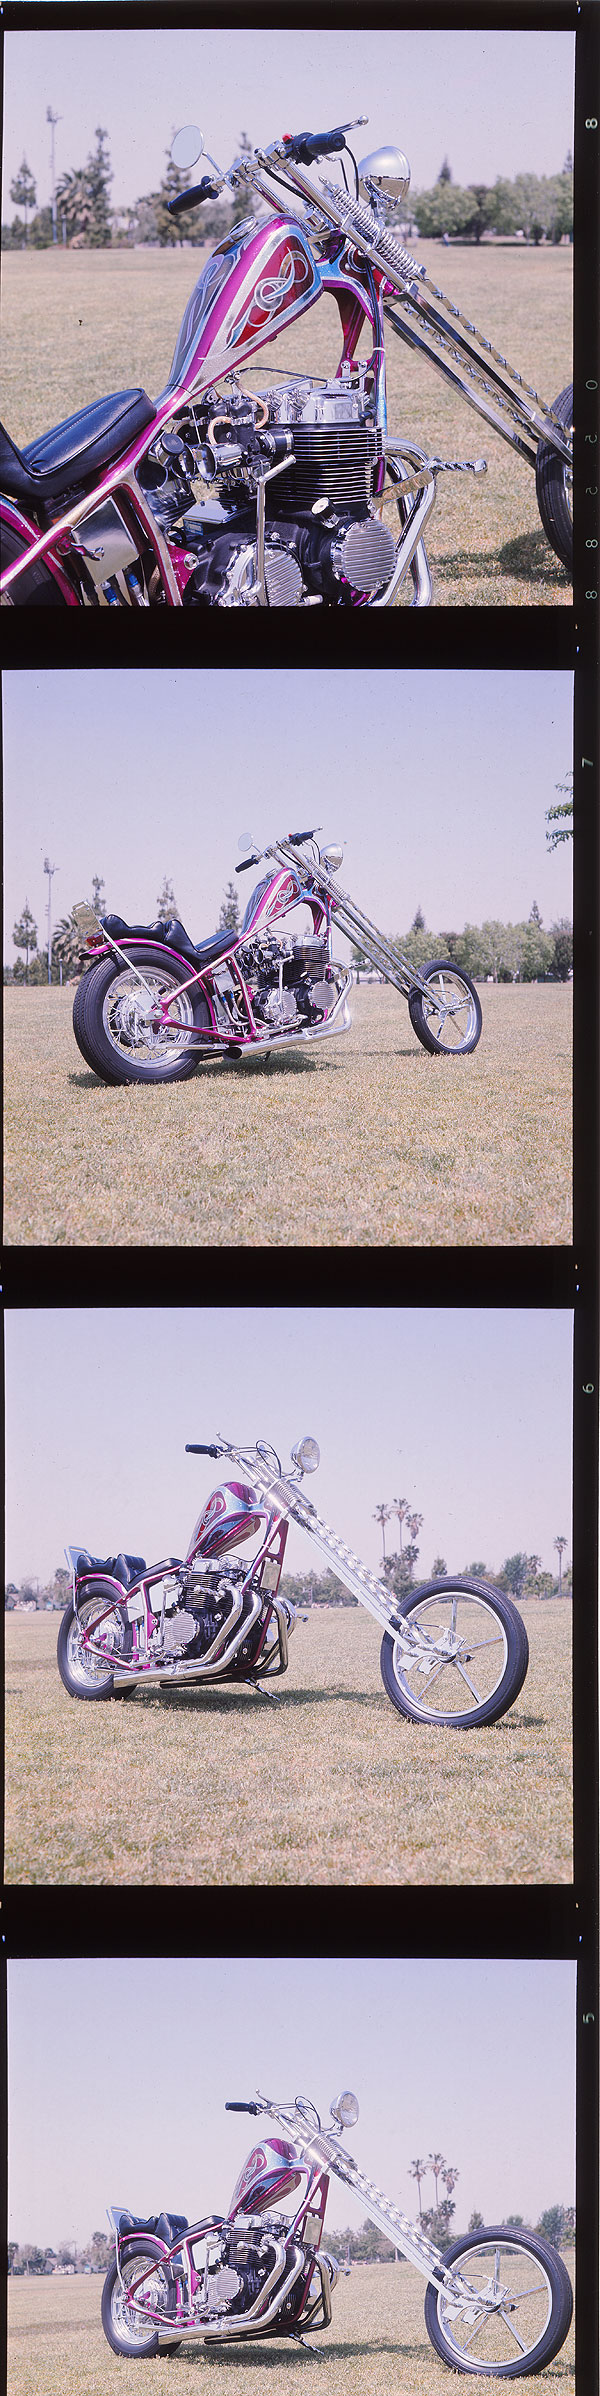 Street-Chopper-Honda-June-1975-j